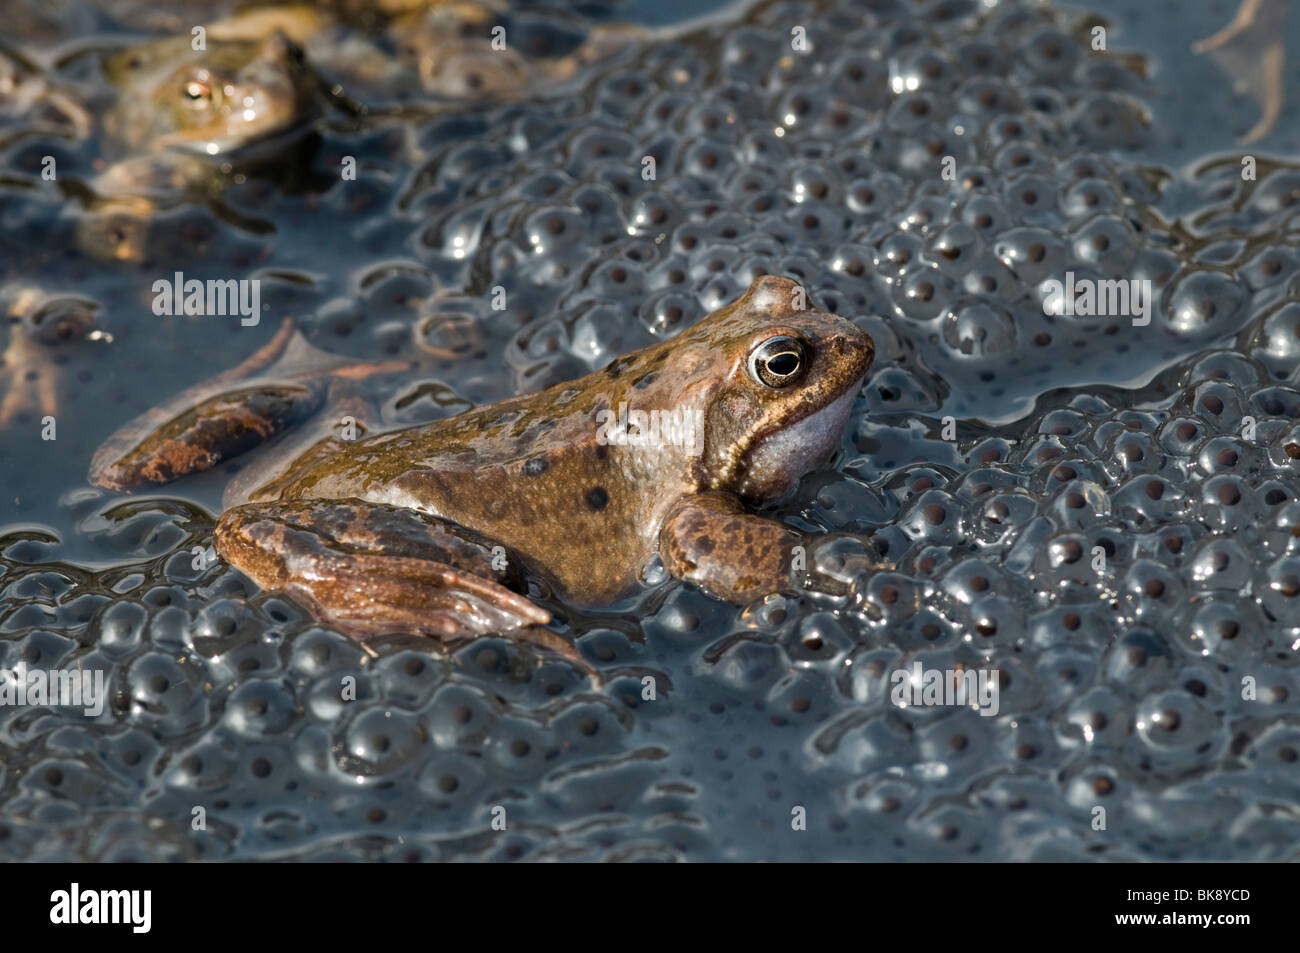 Common Frog (Rana temporaria), in the midst of spawn - Stock Image